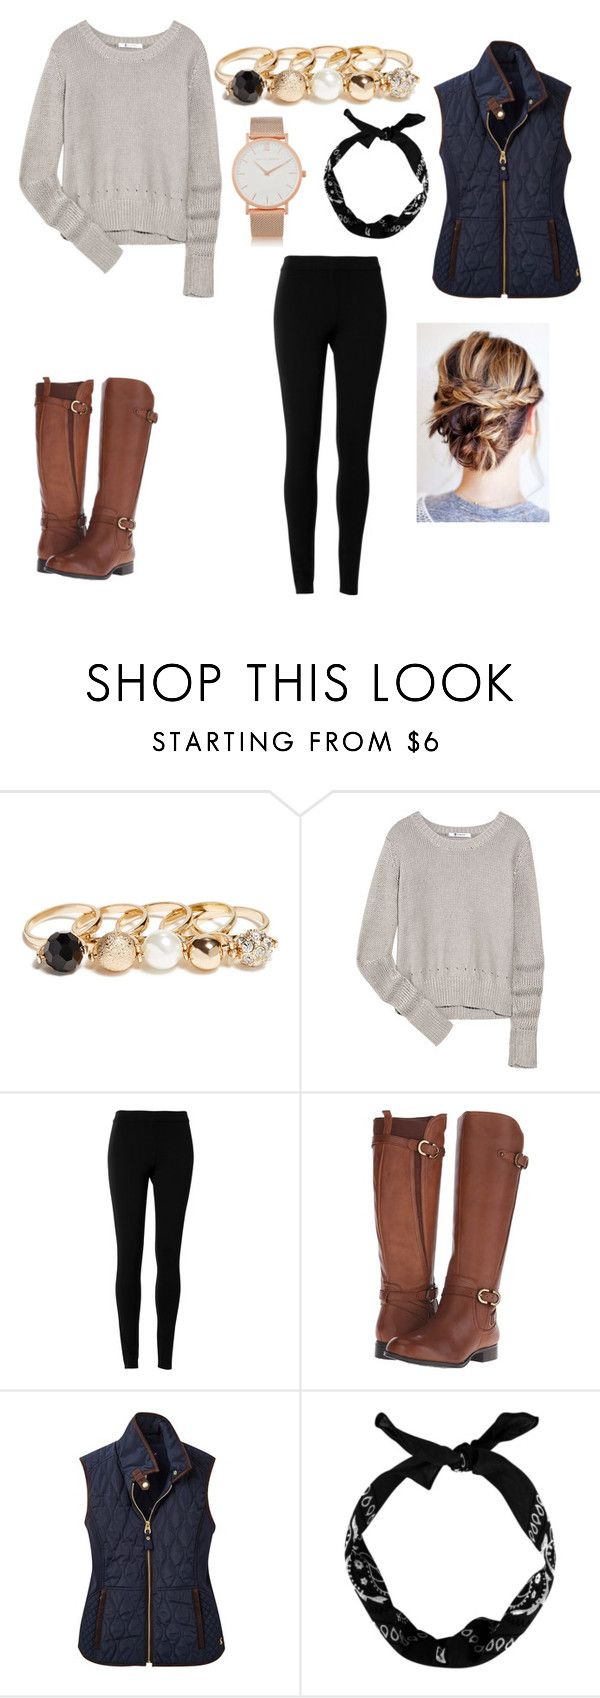 """""""# For chill of Santa Catarina - Brazil"""" by isbeautifulgirl on Polyvore featuring GUESS, T By Alexander Wang, Max Studio, Naturalizer, Joules, Larsson & Jennings, women's clothing, women's fashion, women and female"""